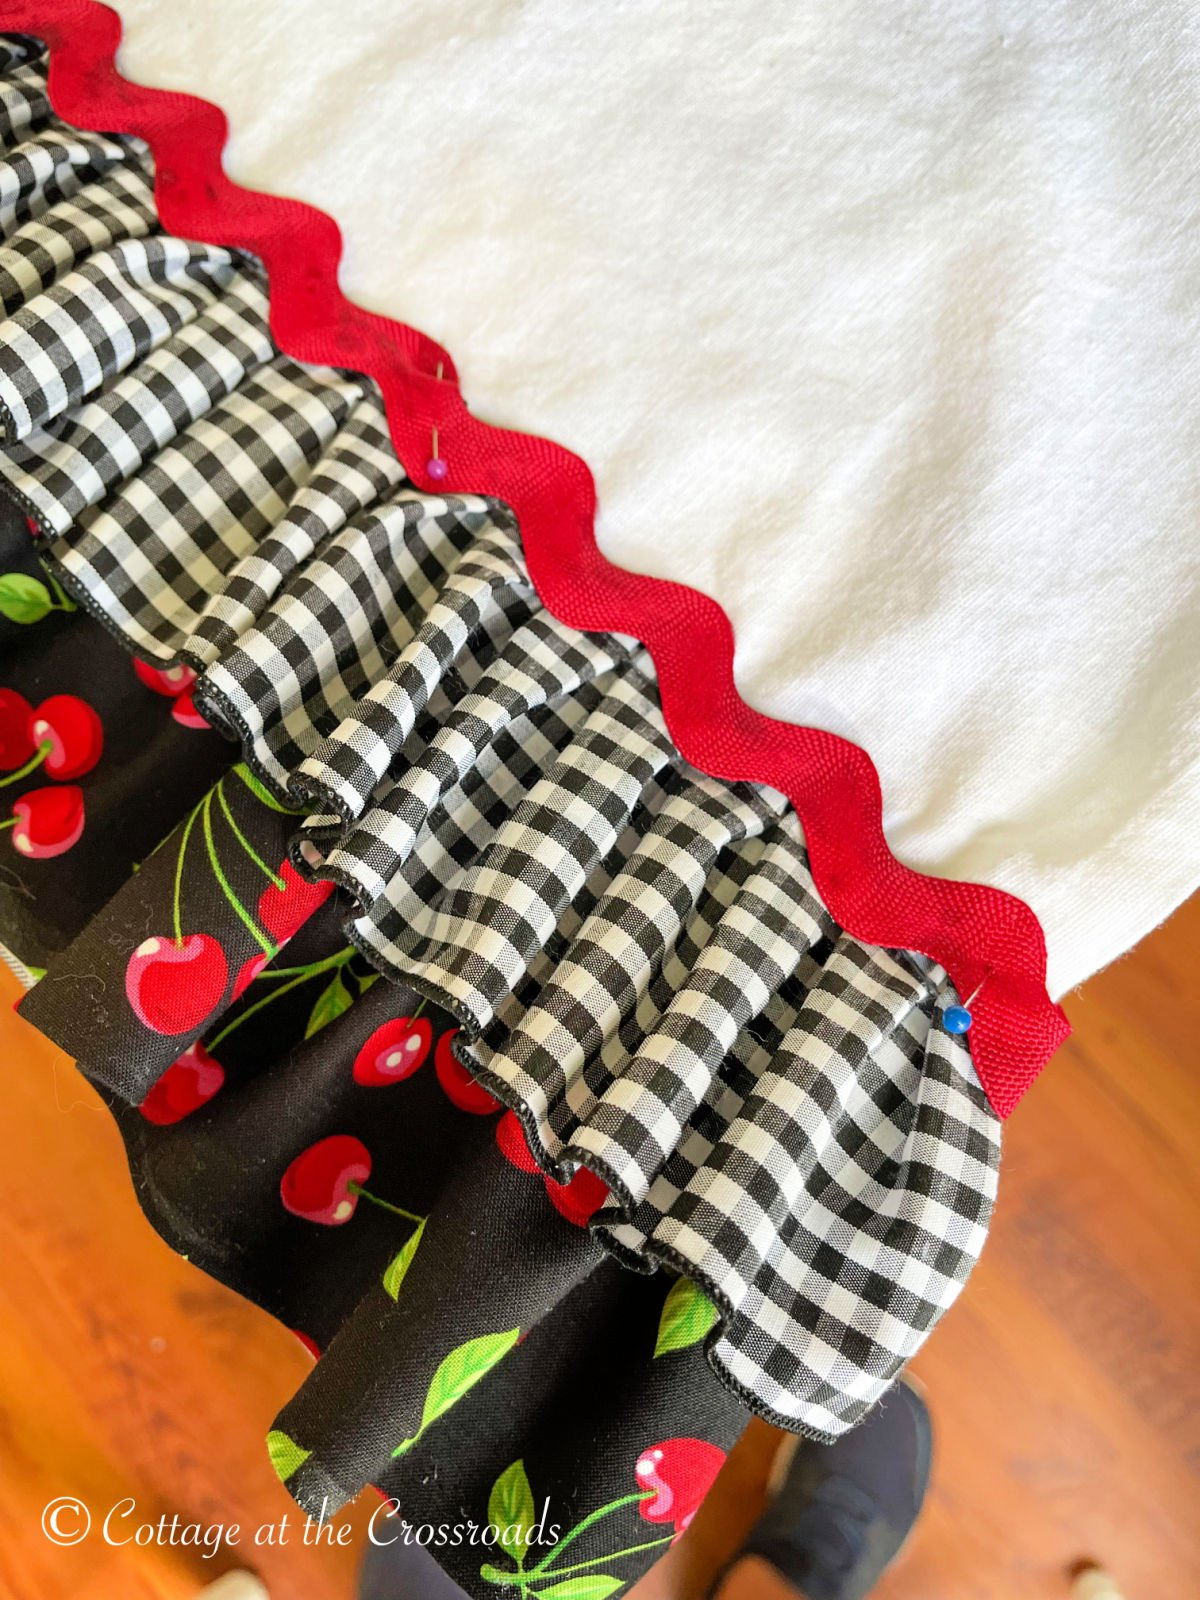 red rick rack on top of ruffles on a tea towel